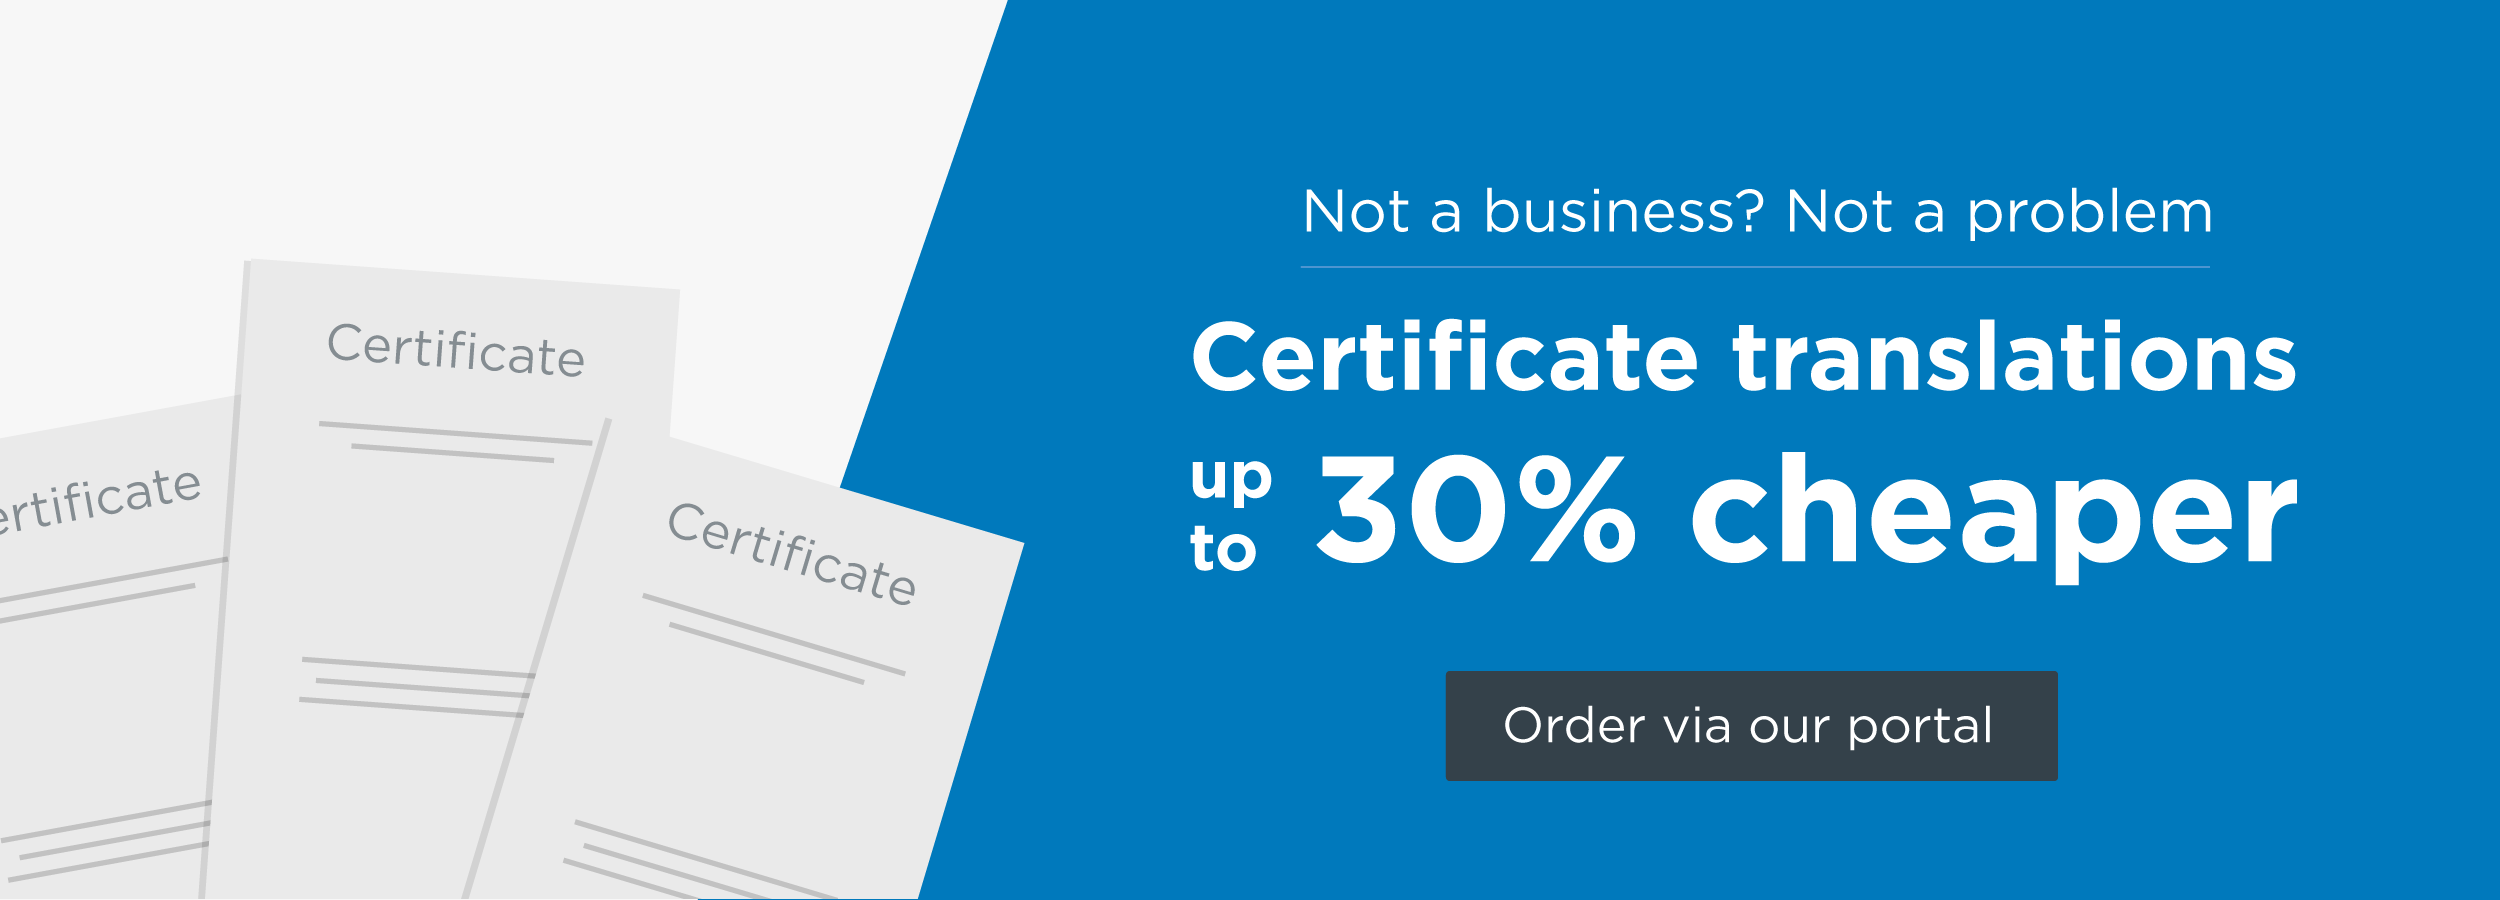 Not a business? Certificate translation is up to 30% through our portal